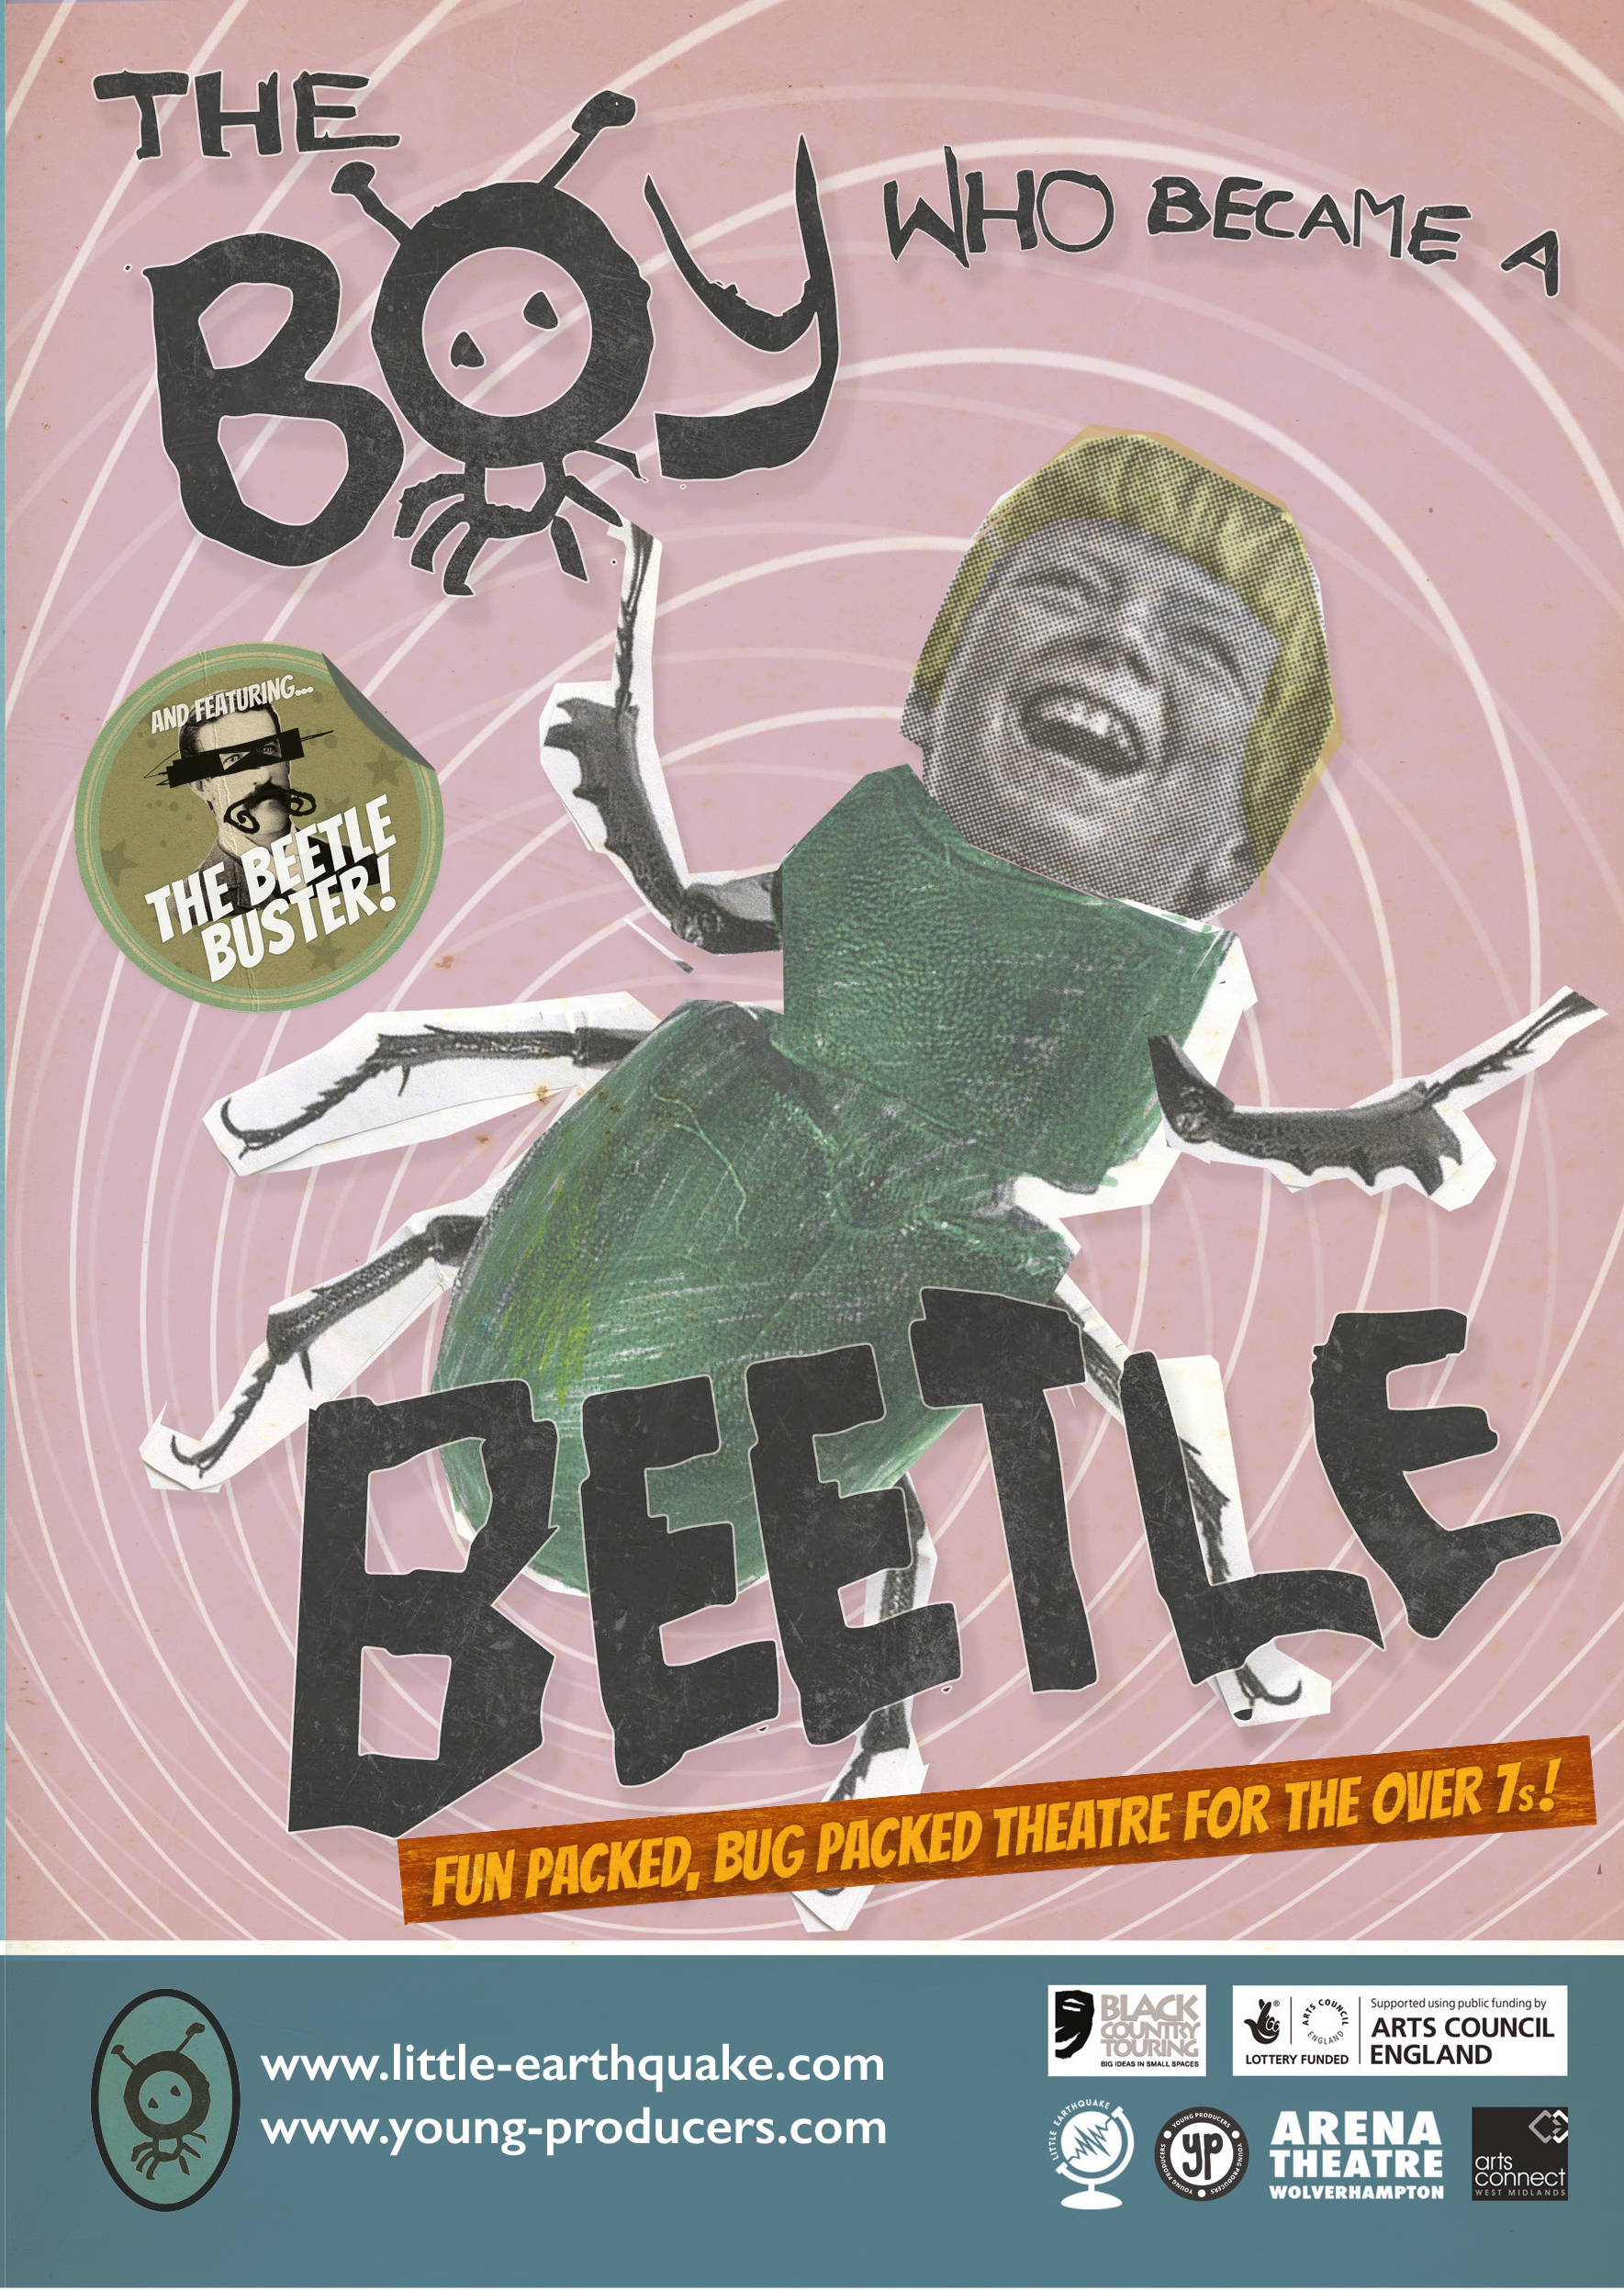 The Boy who became a Beetle